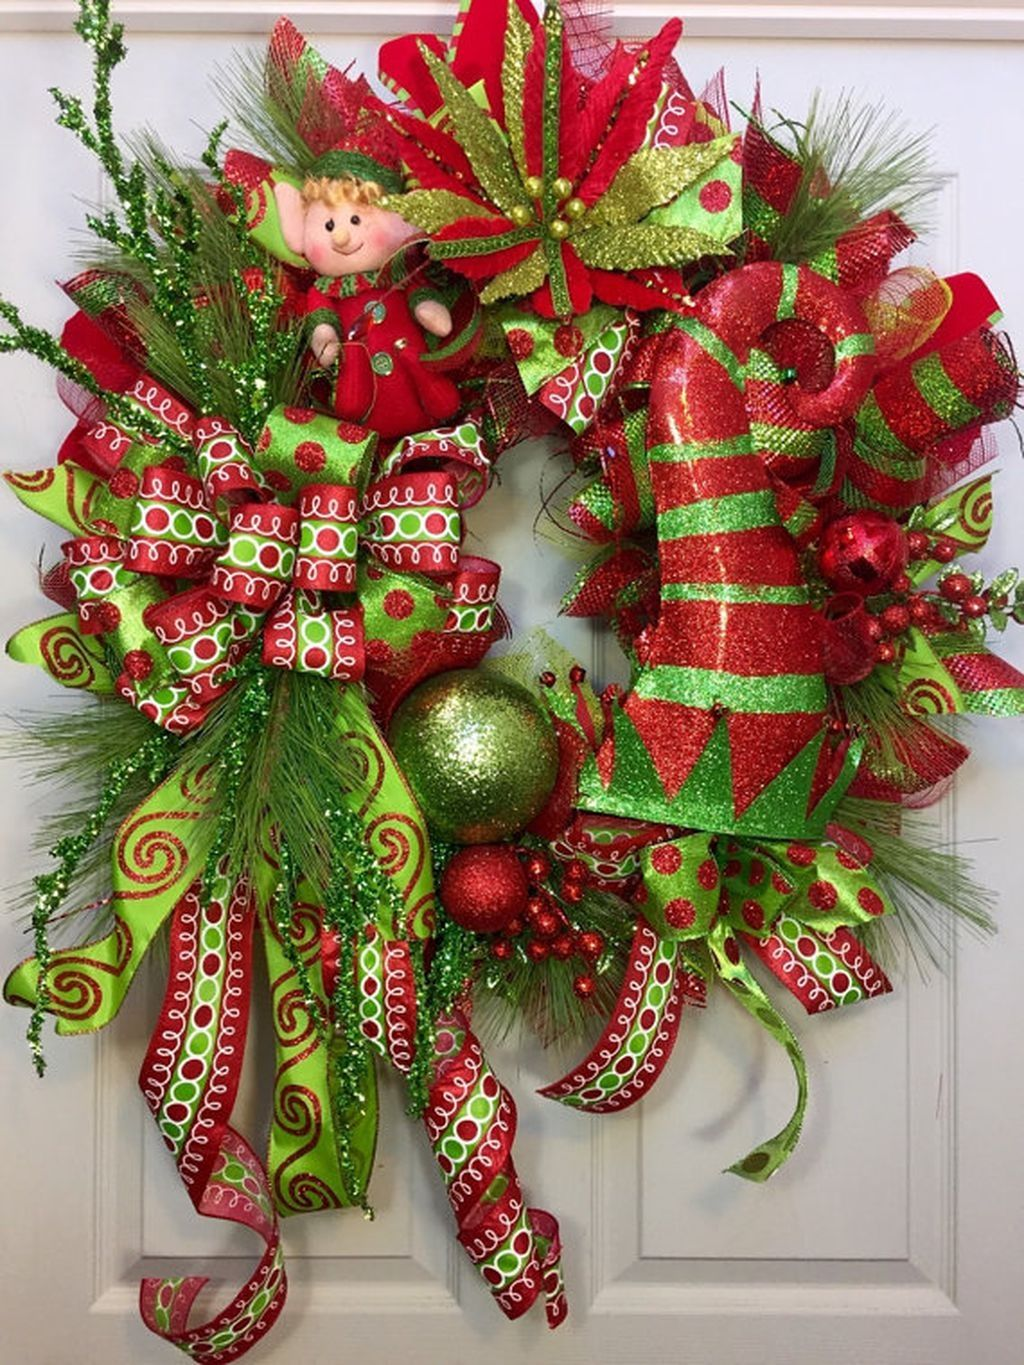 88 Awesome Christmas Wreaths Ideas for All